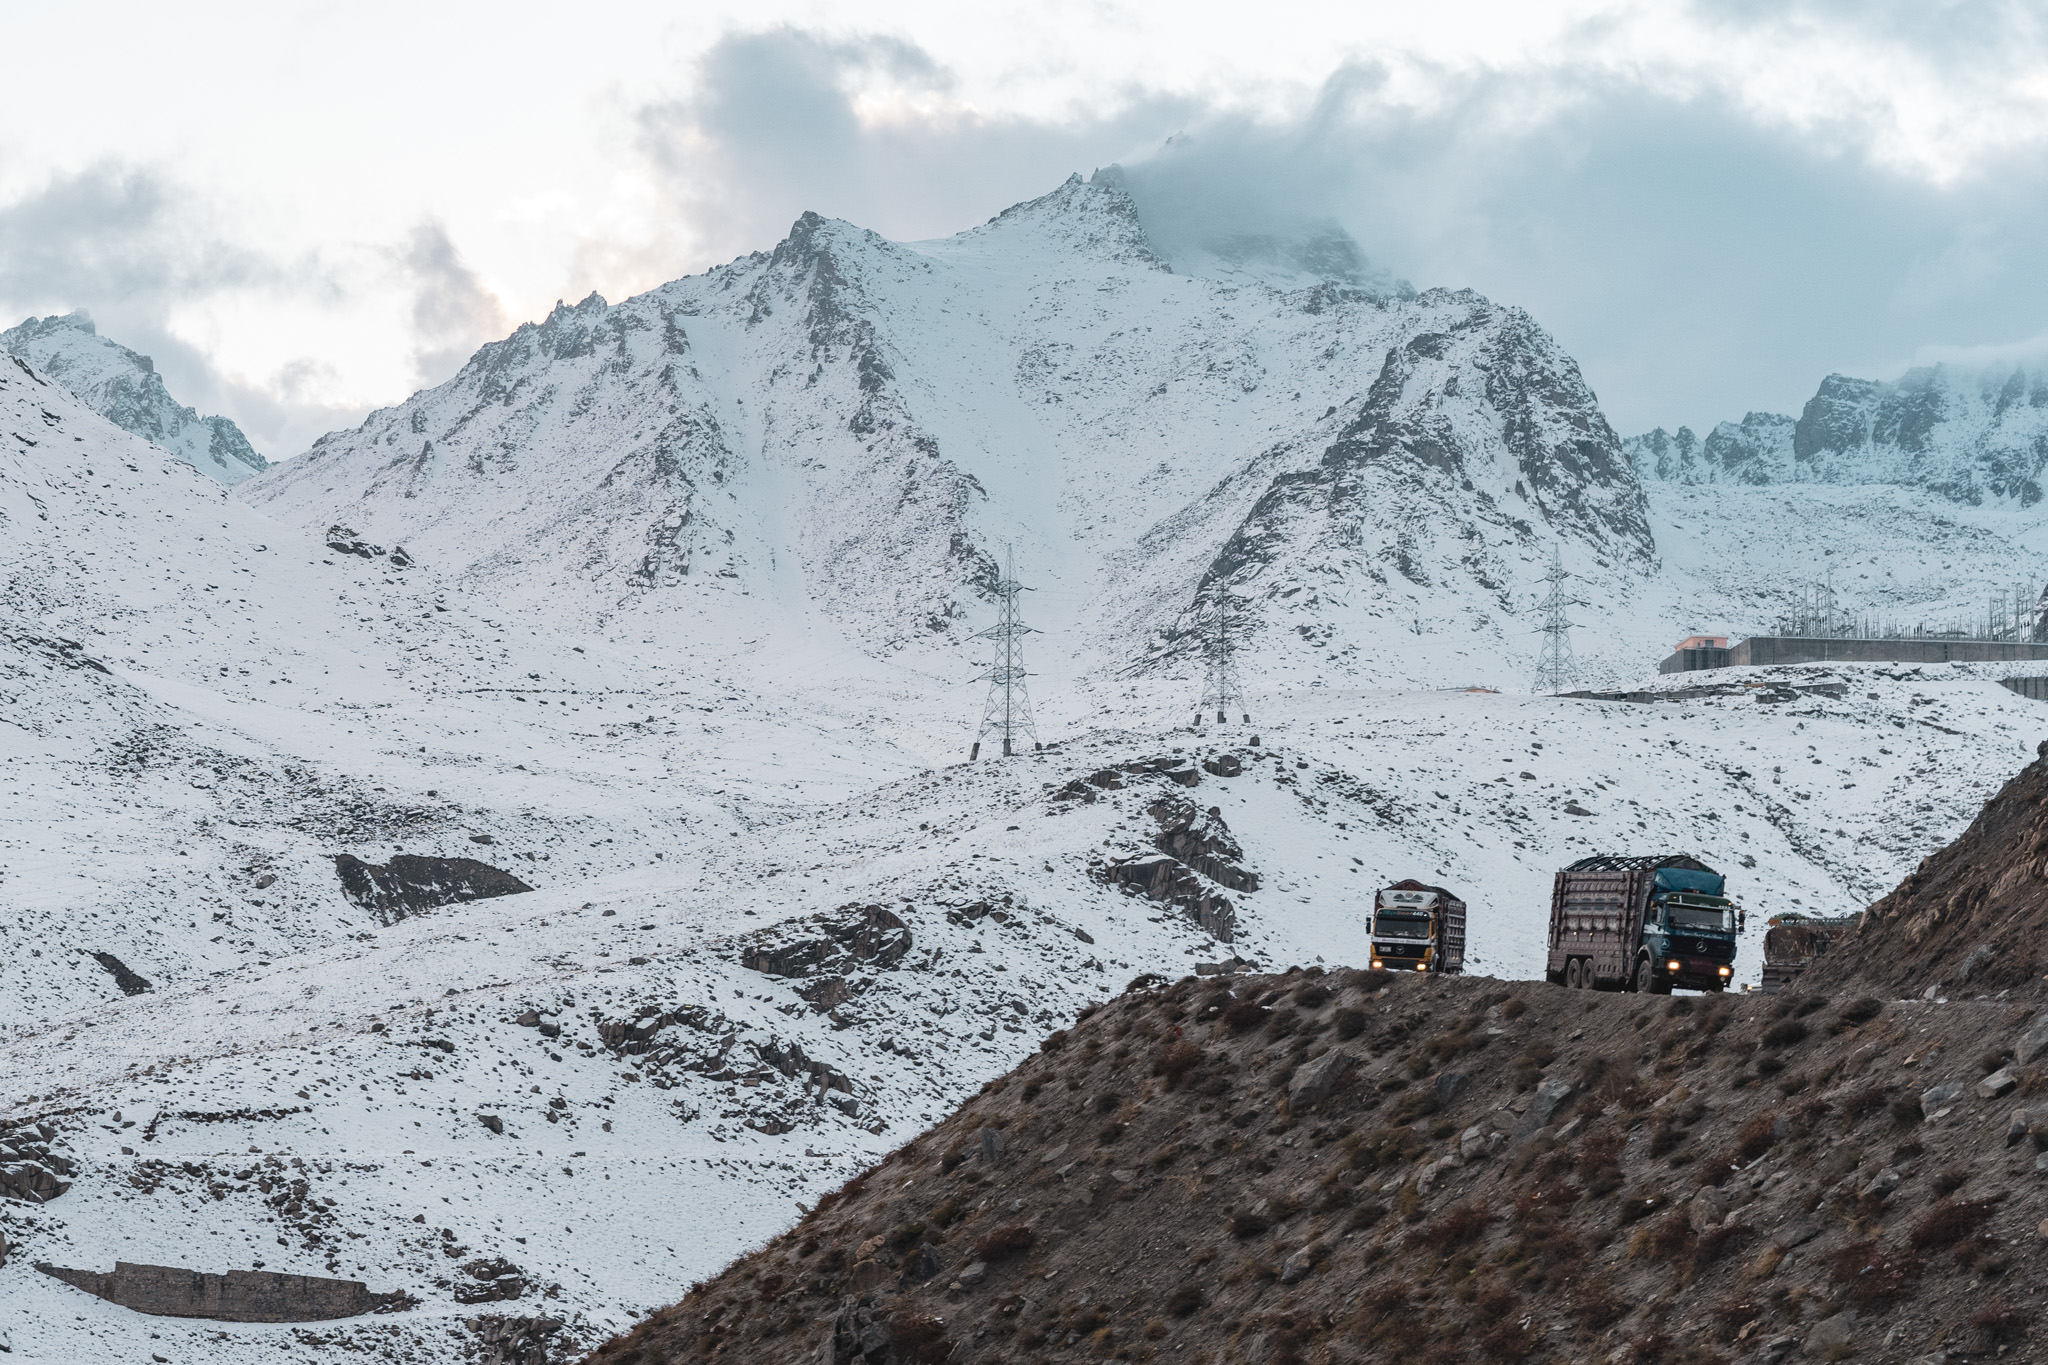 Crossing the Salang Pass from Kabul to Mazar-e-Sharif